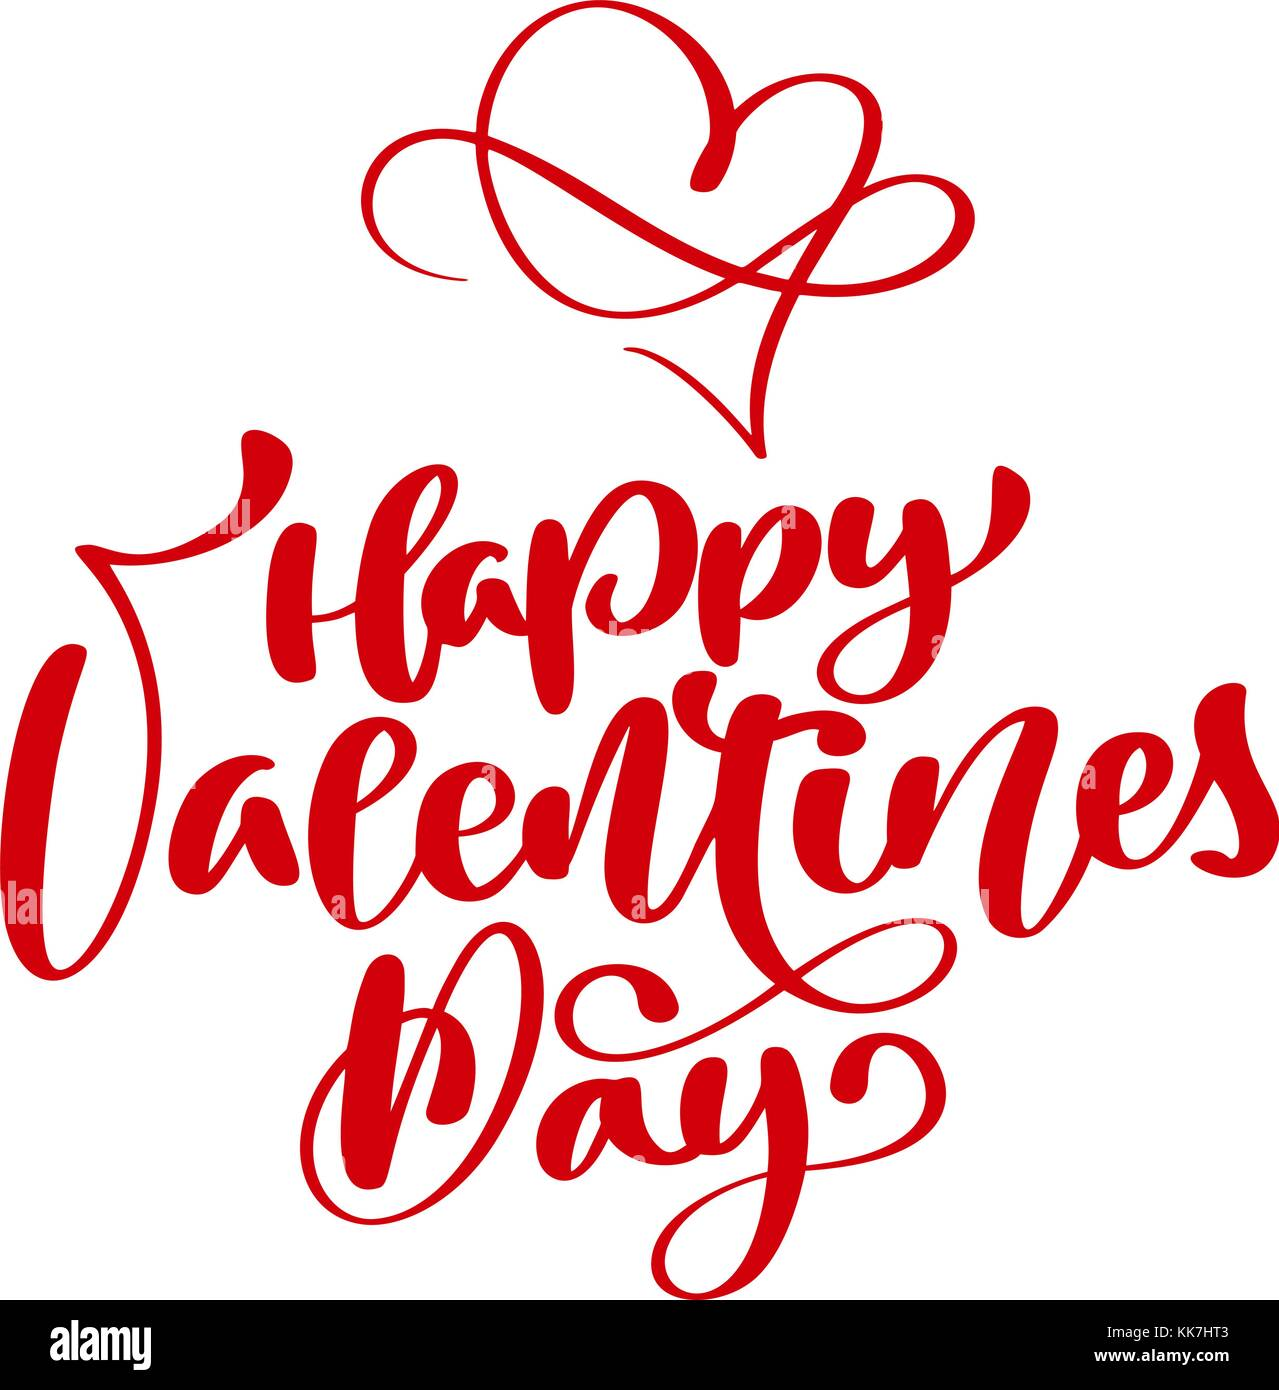 Red Happy Valentines Day Typography Poster With Handwritten Calligraphy Text Isolated On White Background Vector Illustration